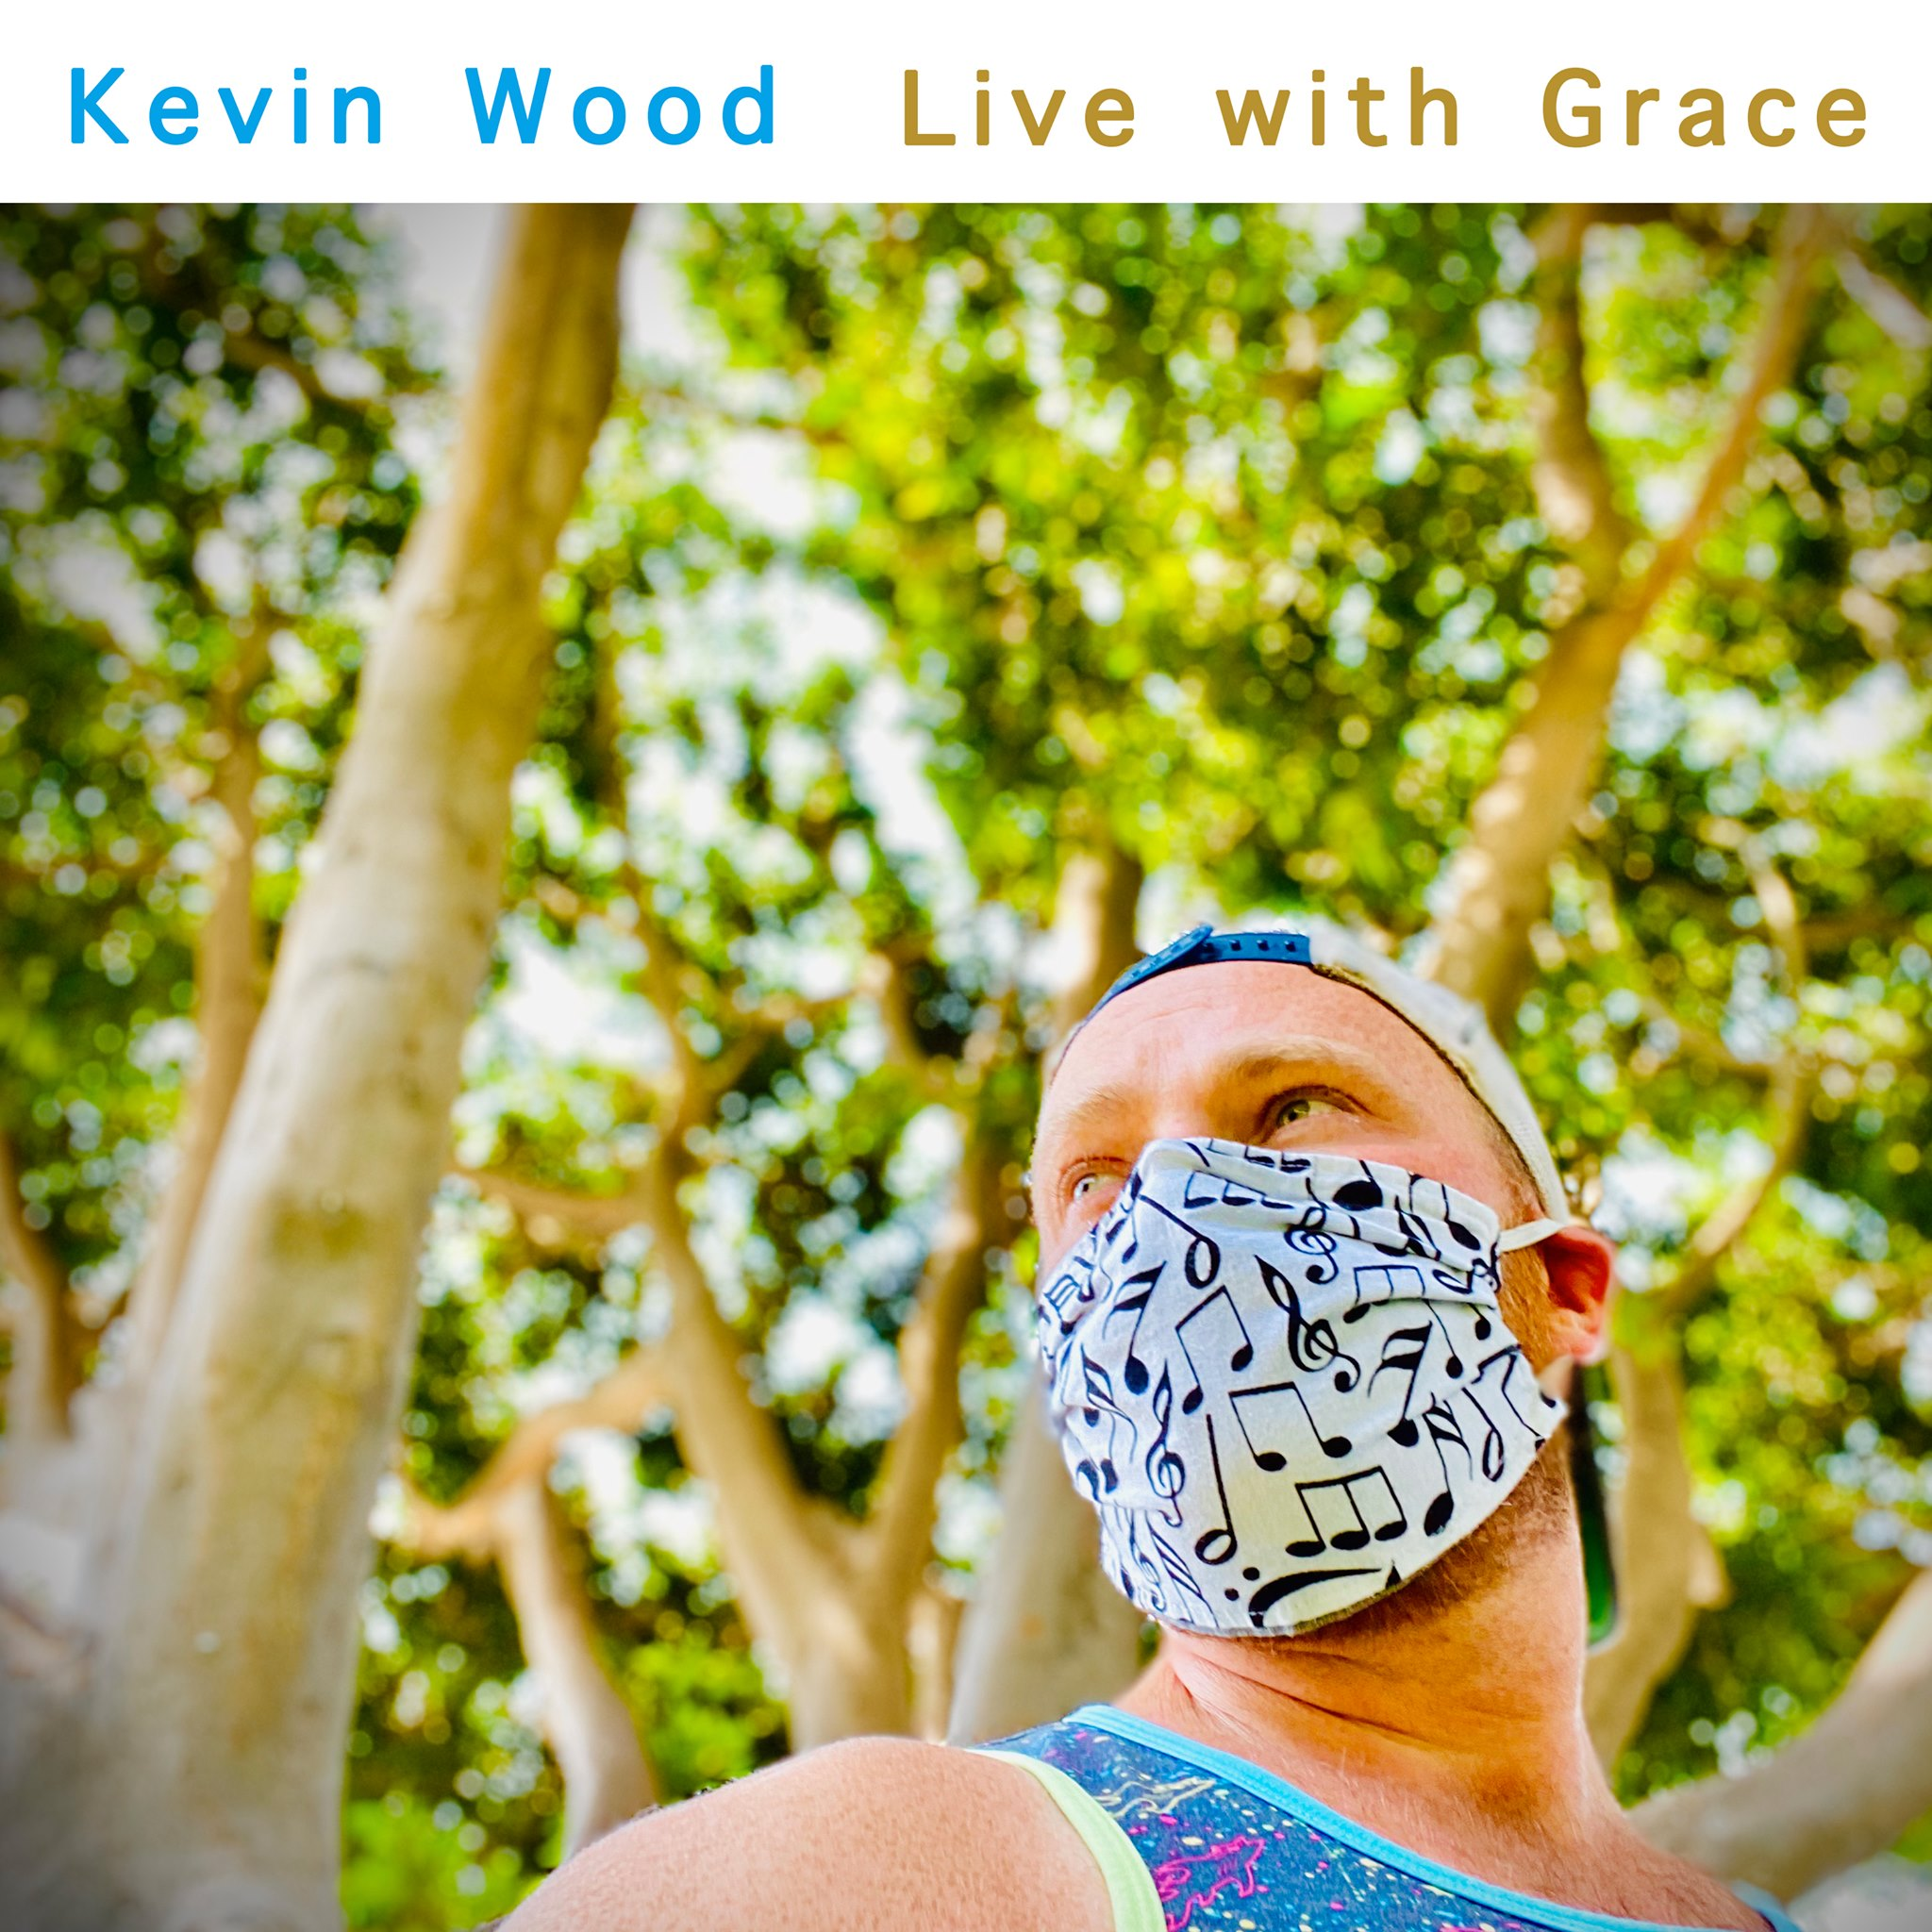 Kevin Wood's Latest Release Offers Solace To Others